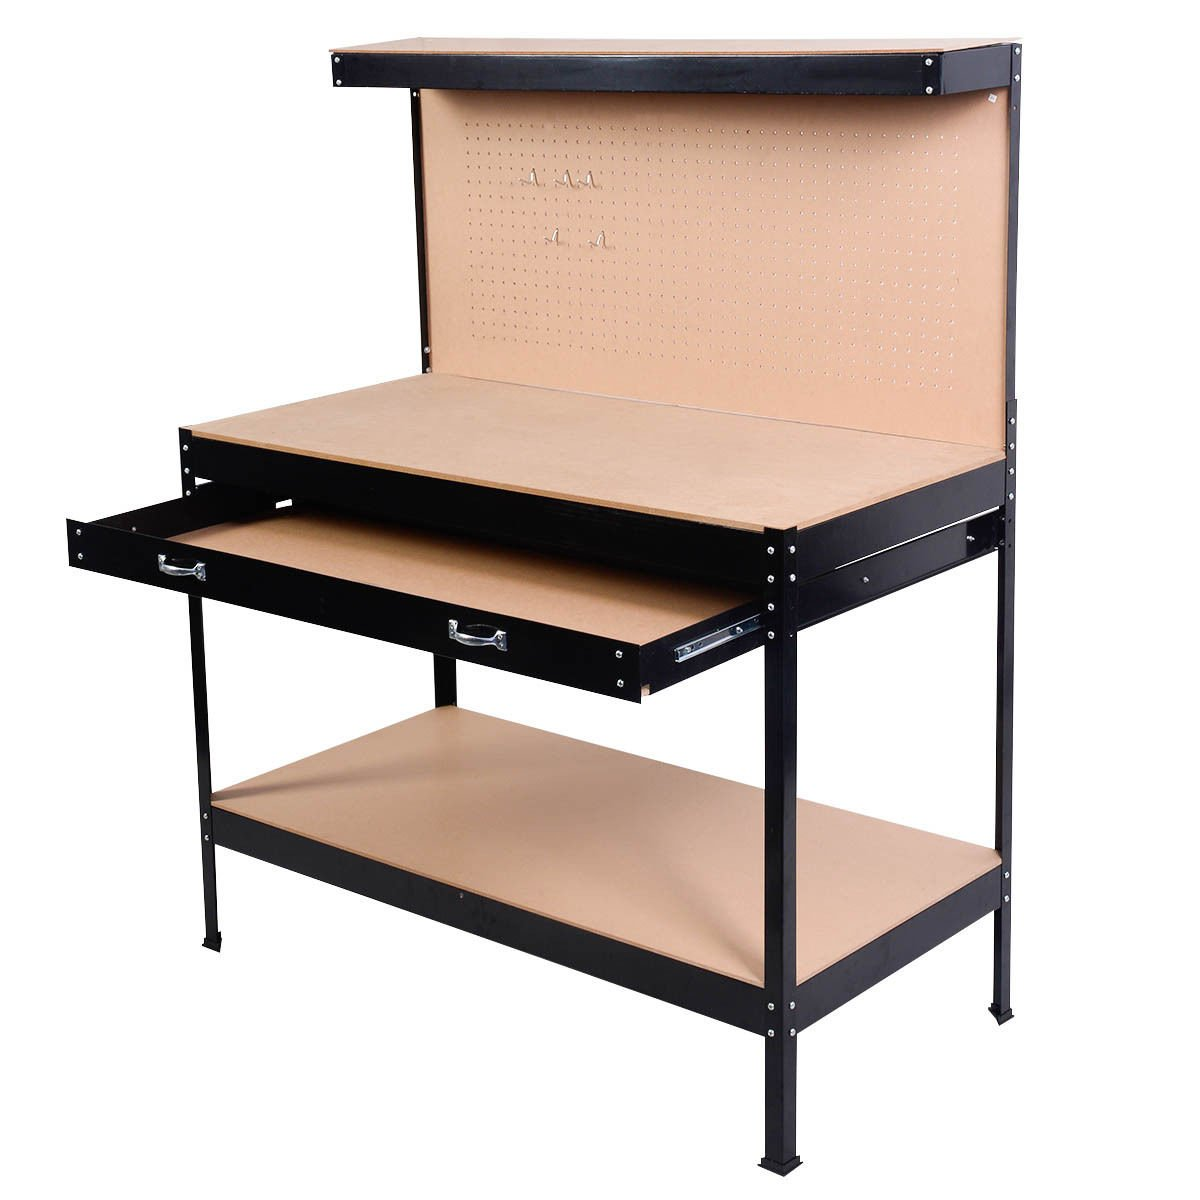 Work Bench Tool Storage Steel Frame Tool Workshop Table Most Viewed by Unknown (Image #2)